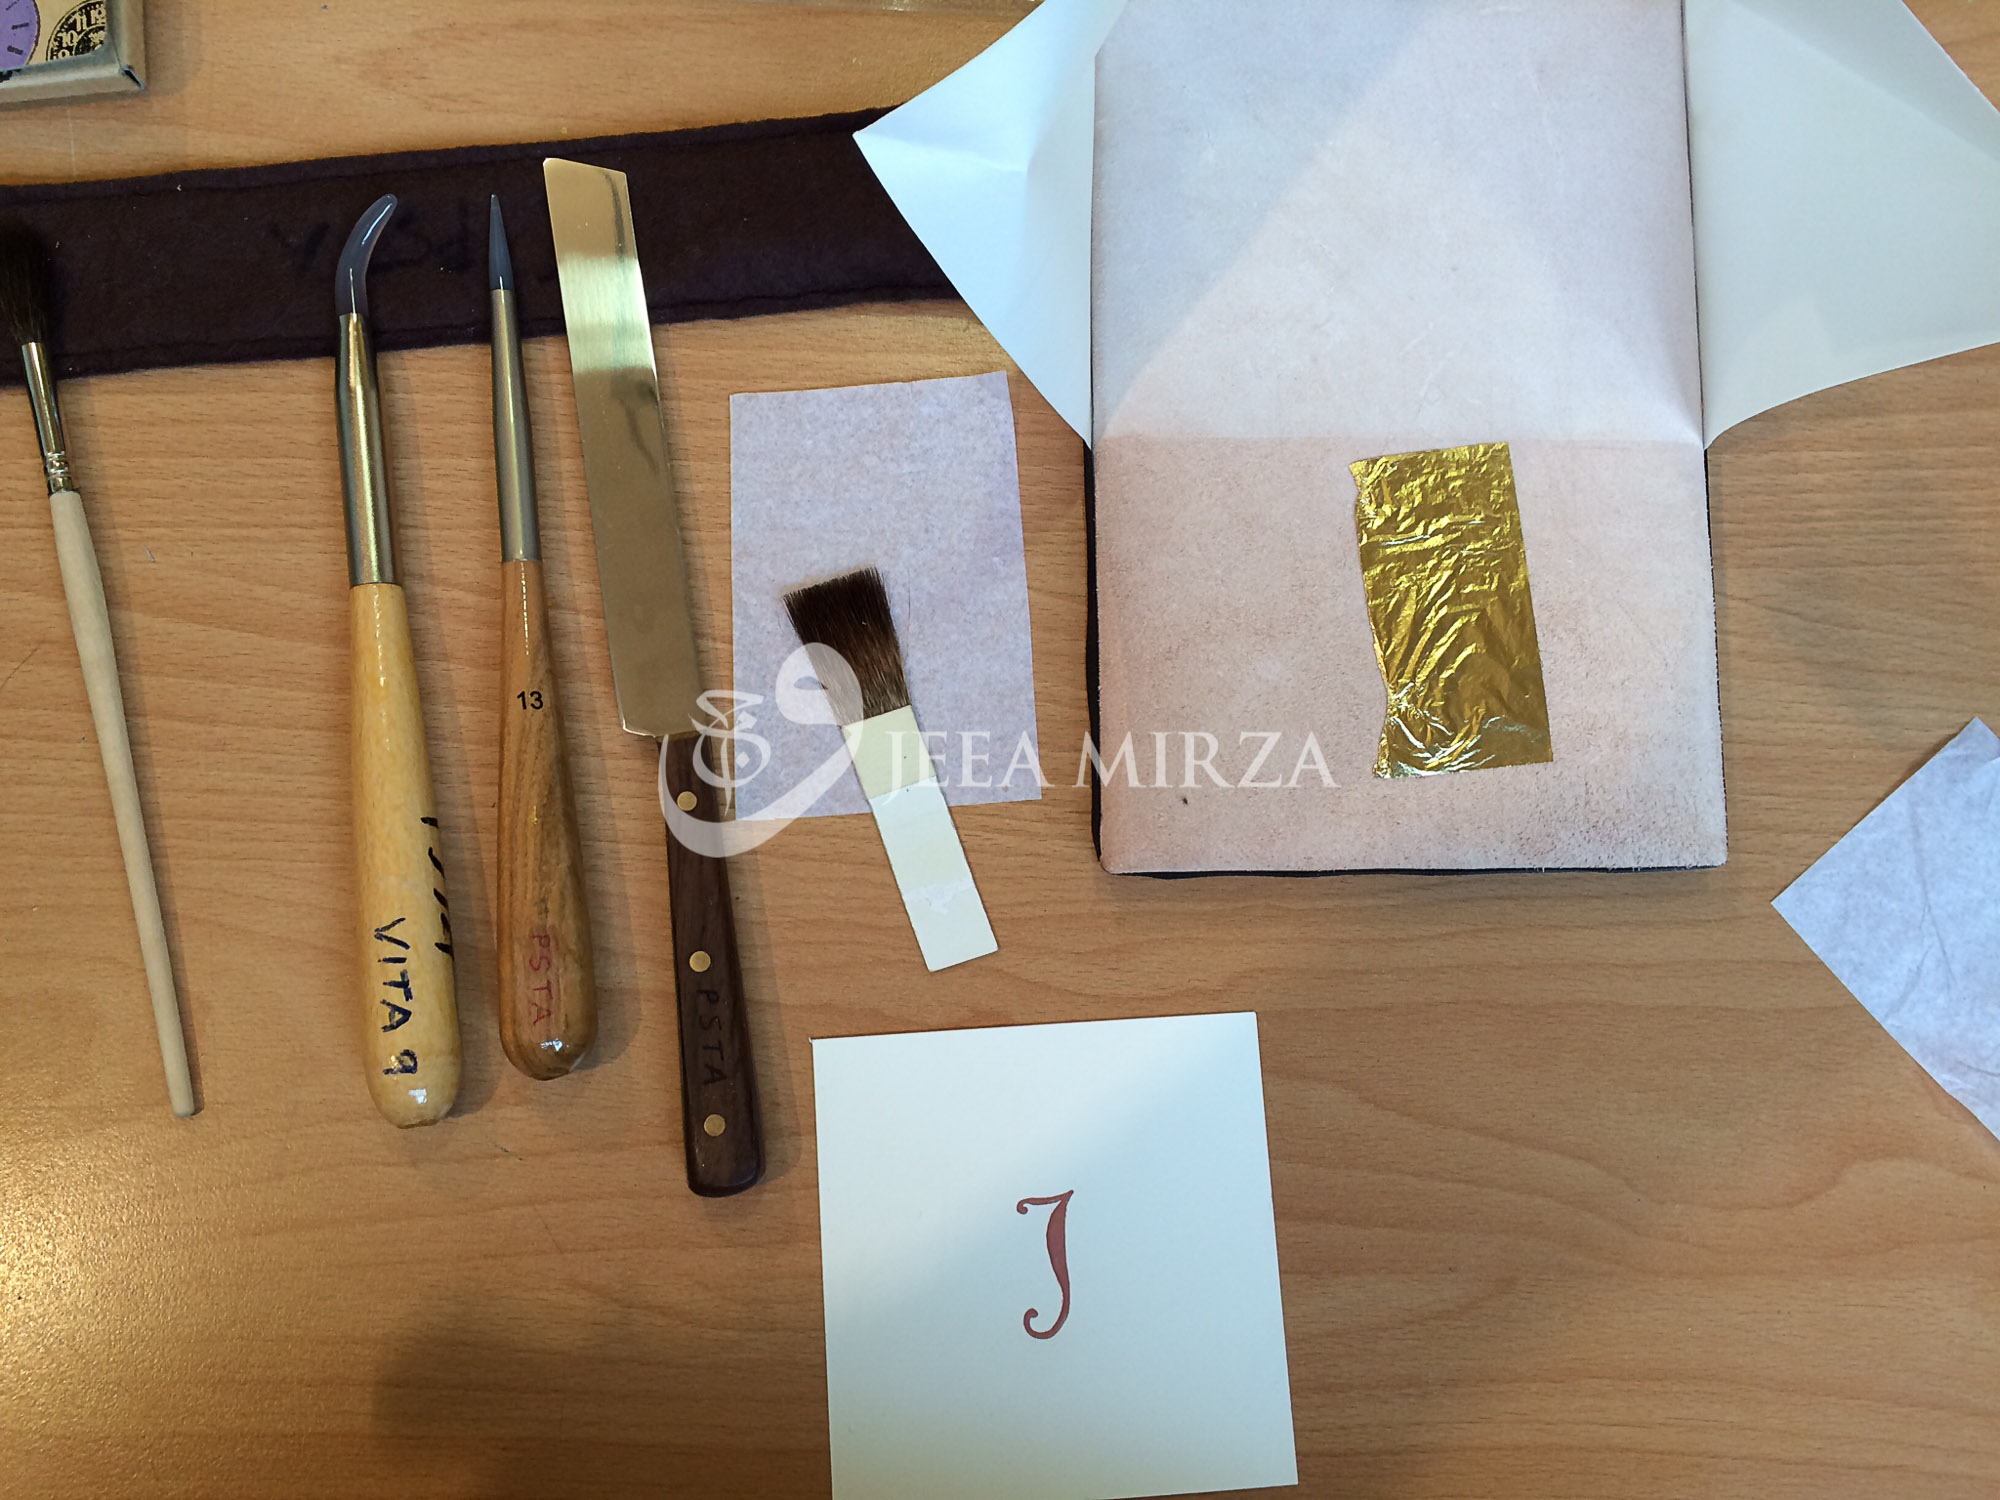 """© 2016 Wajeea Mirza.  The tools needed for raised gilding on gesso.     From left to right: 1) Squirrel hair gilder's mop 2) dog tooth burnisher 3) needle point burnisher 4) gilder's knife 5) small gilder's tip resting on glassine paper 6) gilder's cushion with a piece of loose gold leaf  7) a raised letter """"J"""" ready to be gilded"""